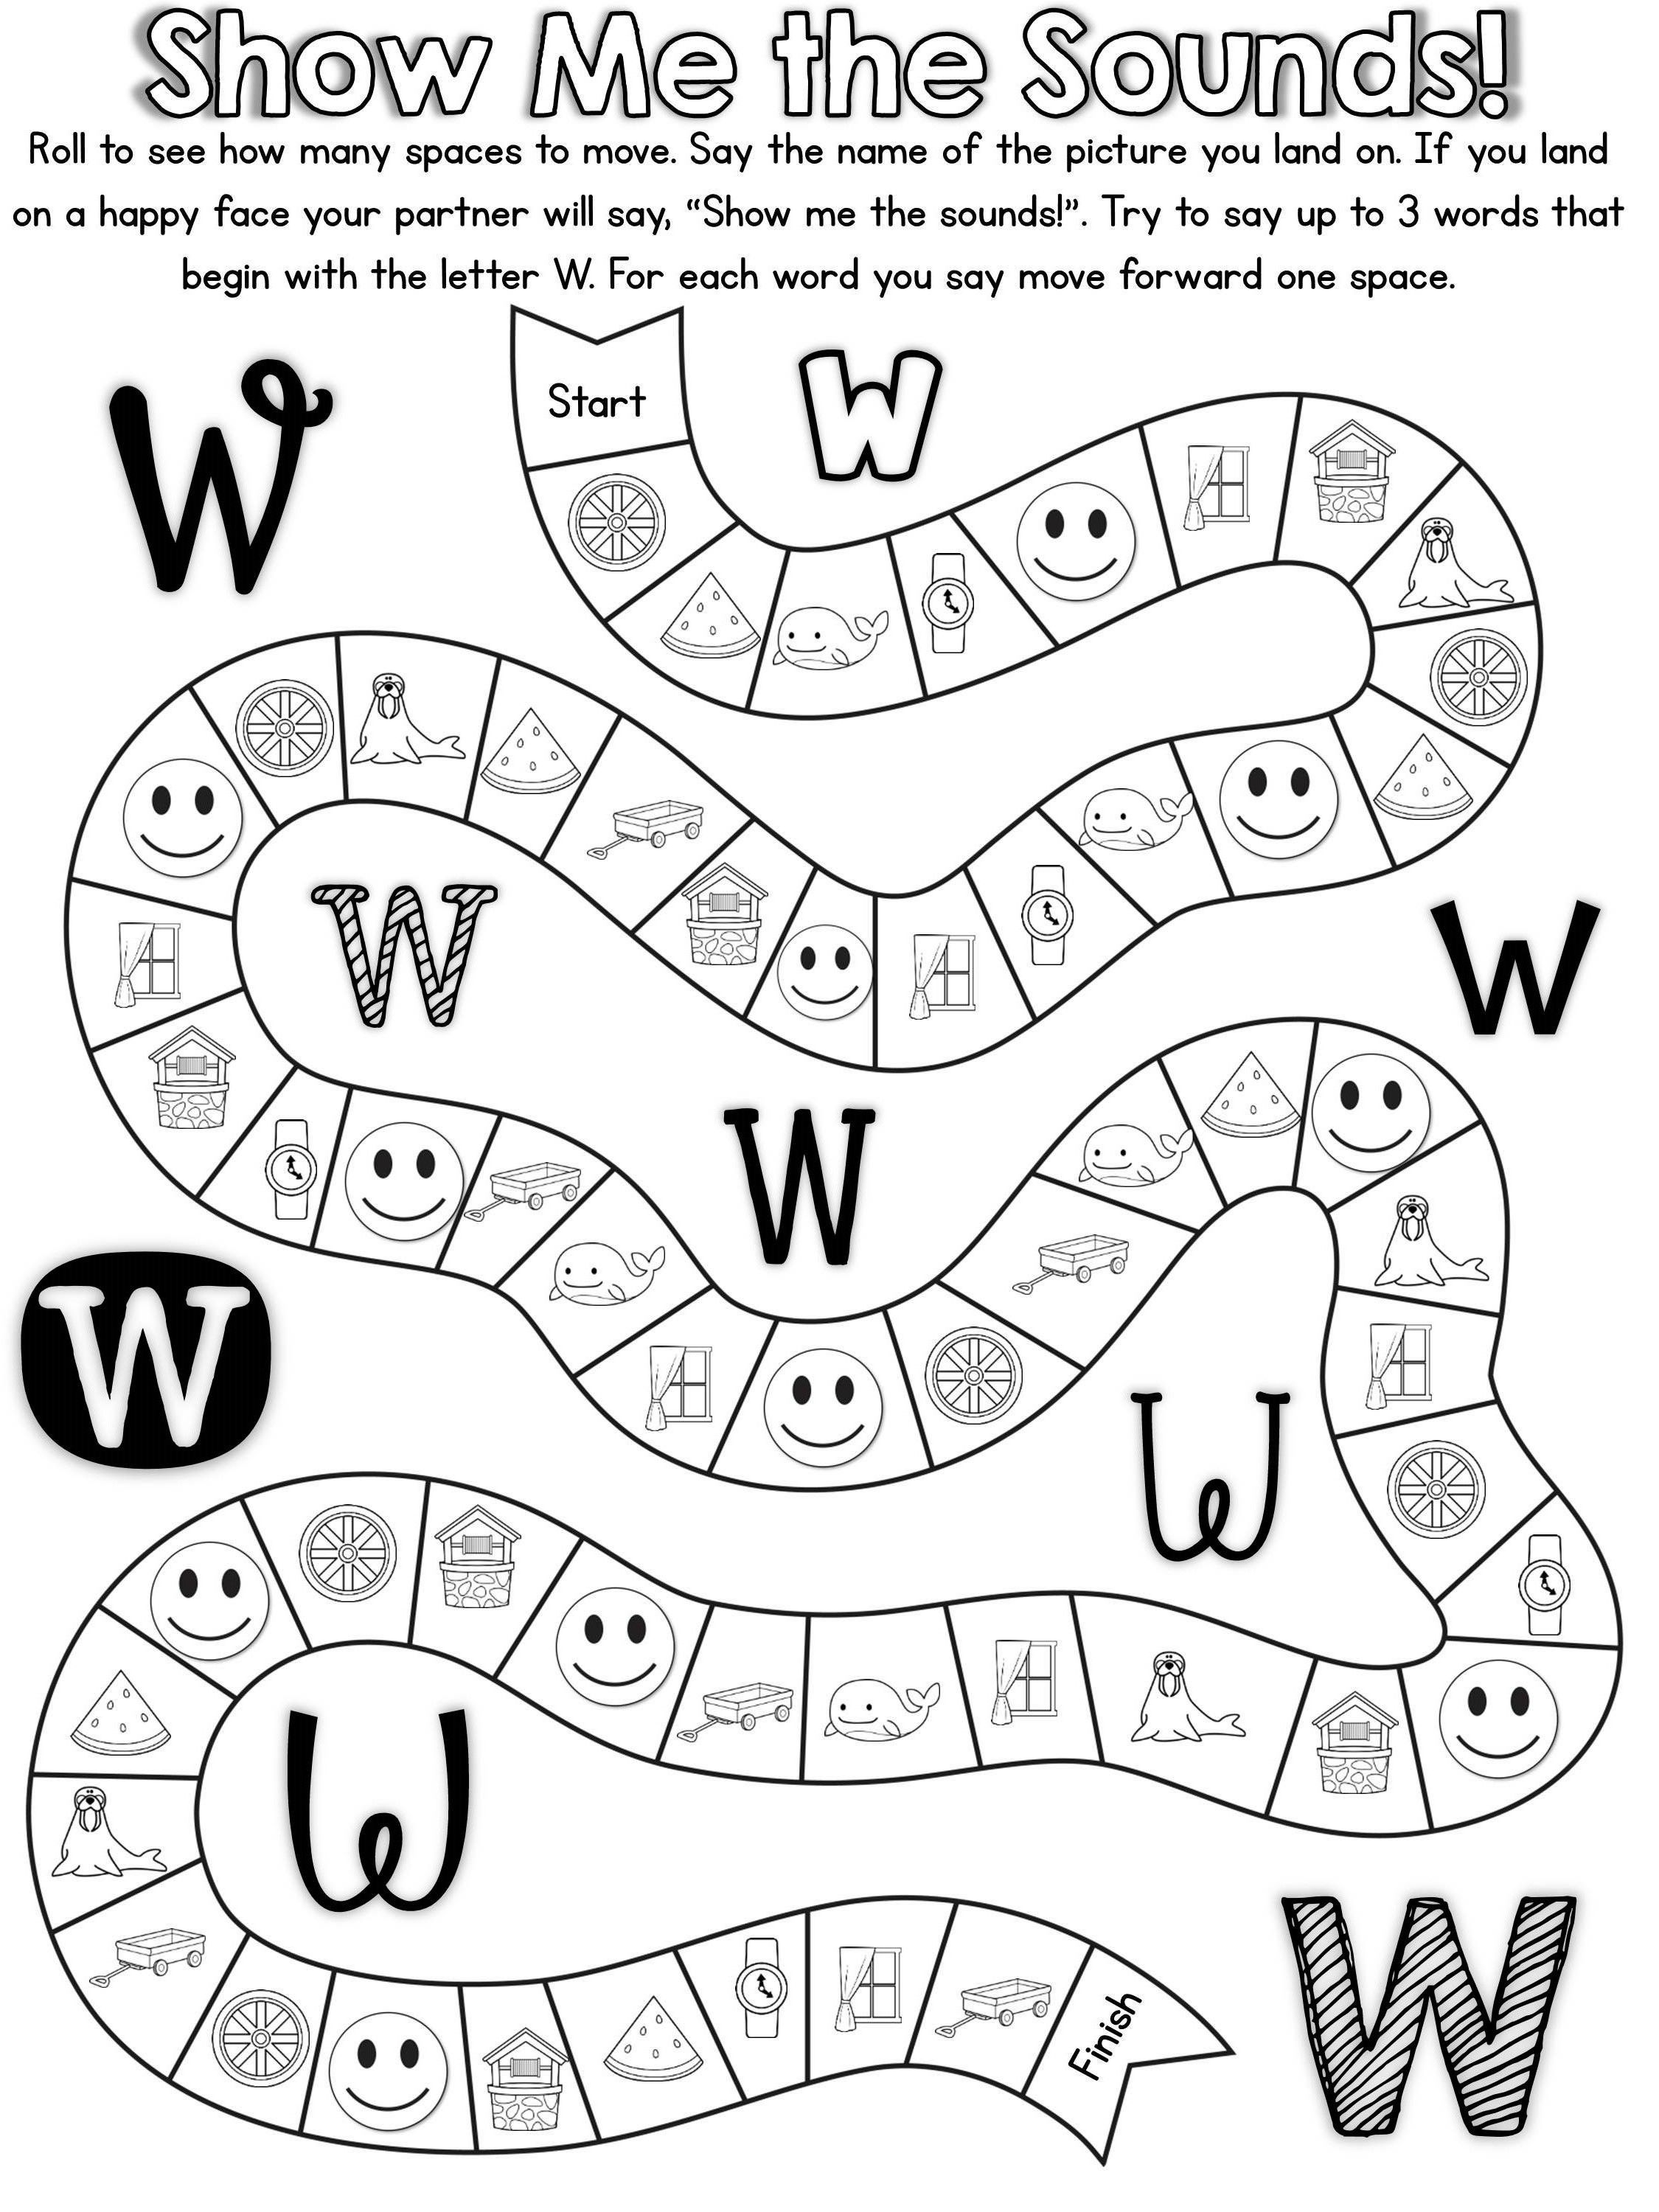 20 Ready To Print No Prep Games To Practice The Letter W